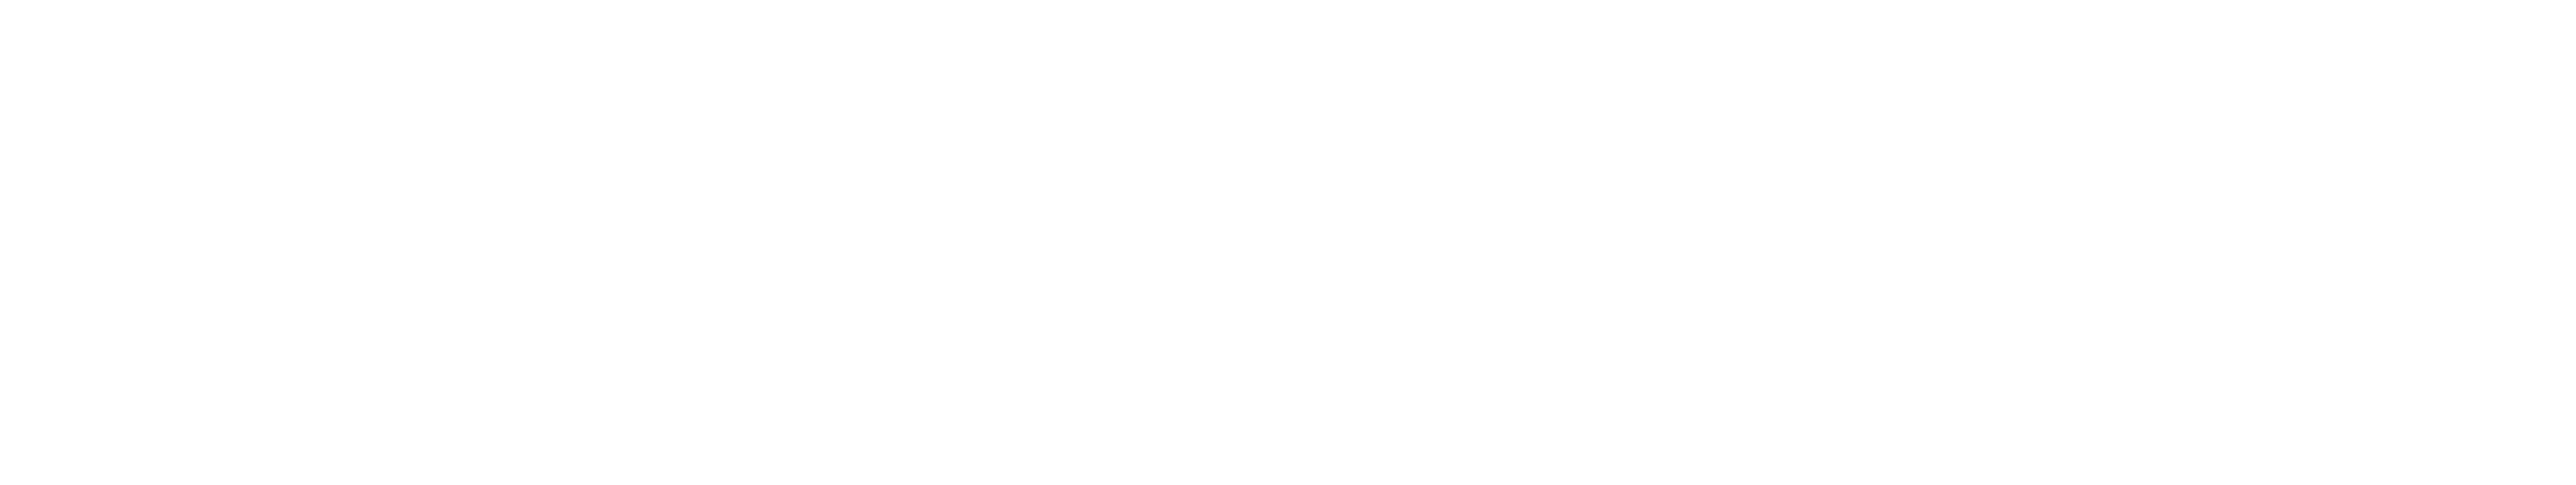 The Murphy Law Office PC, Shane D. Murphy